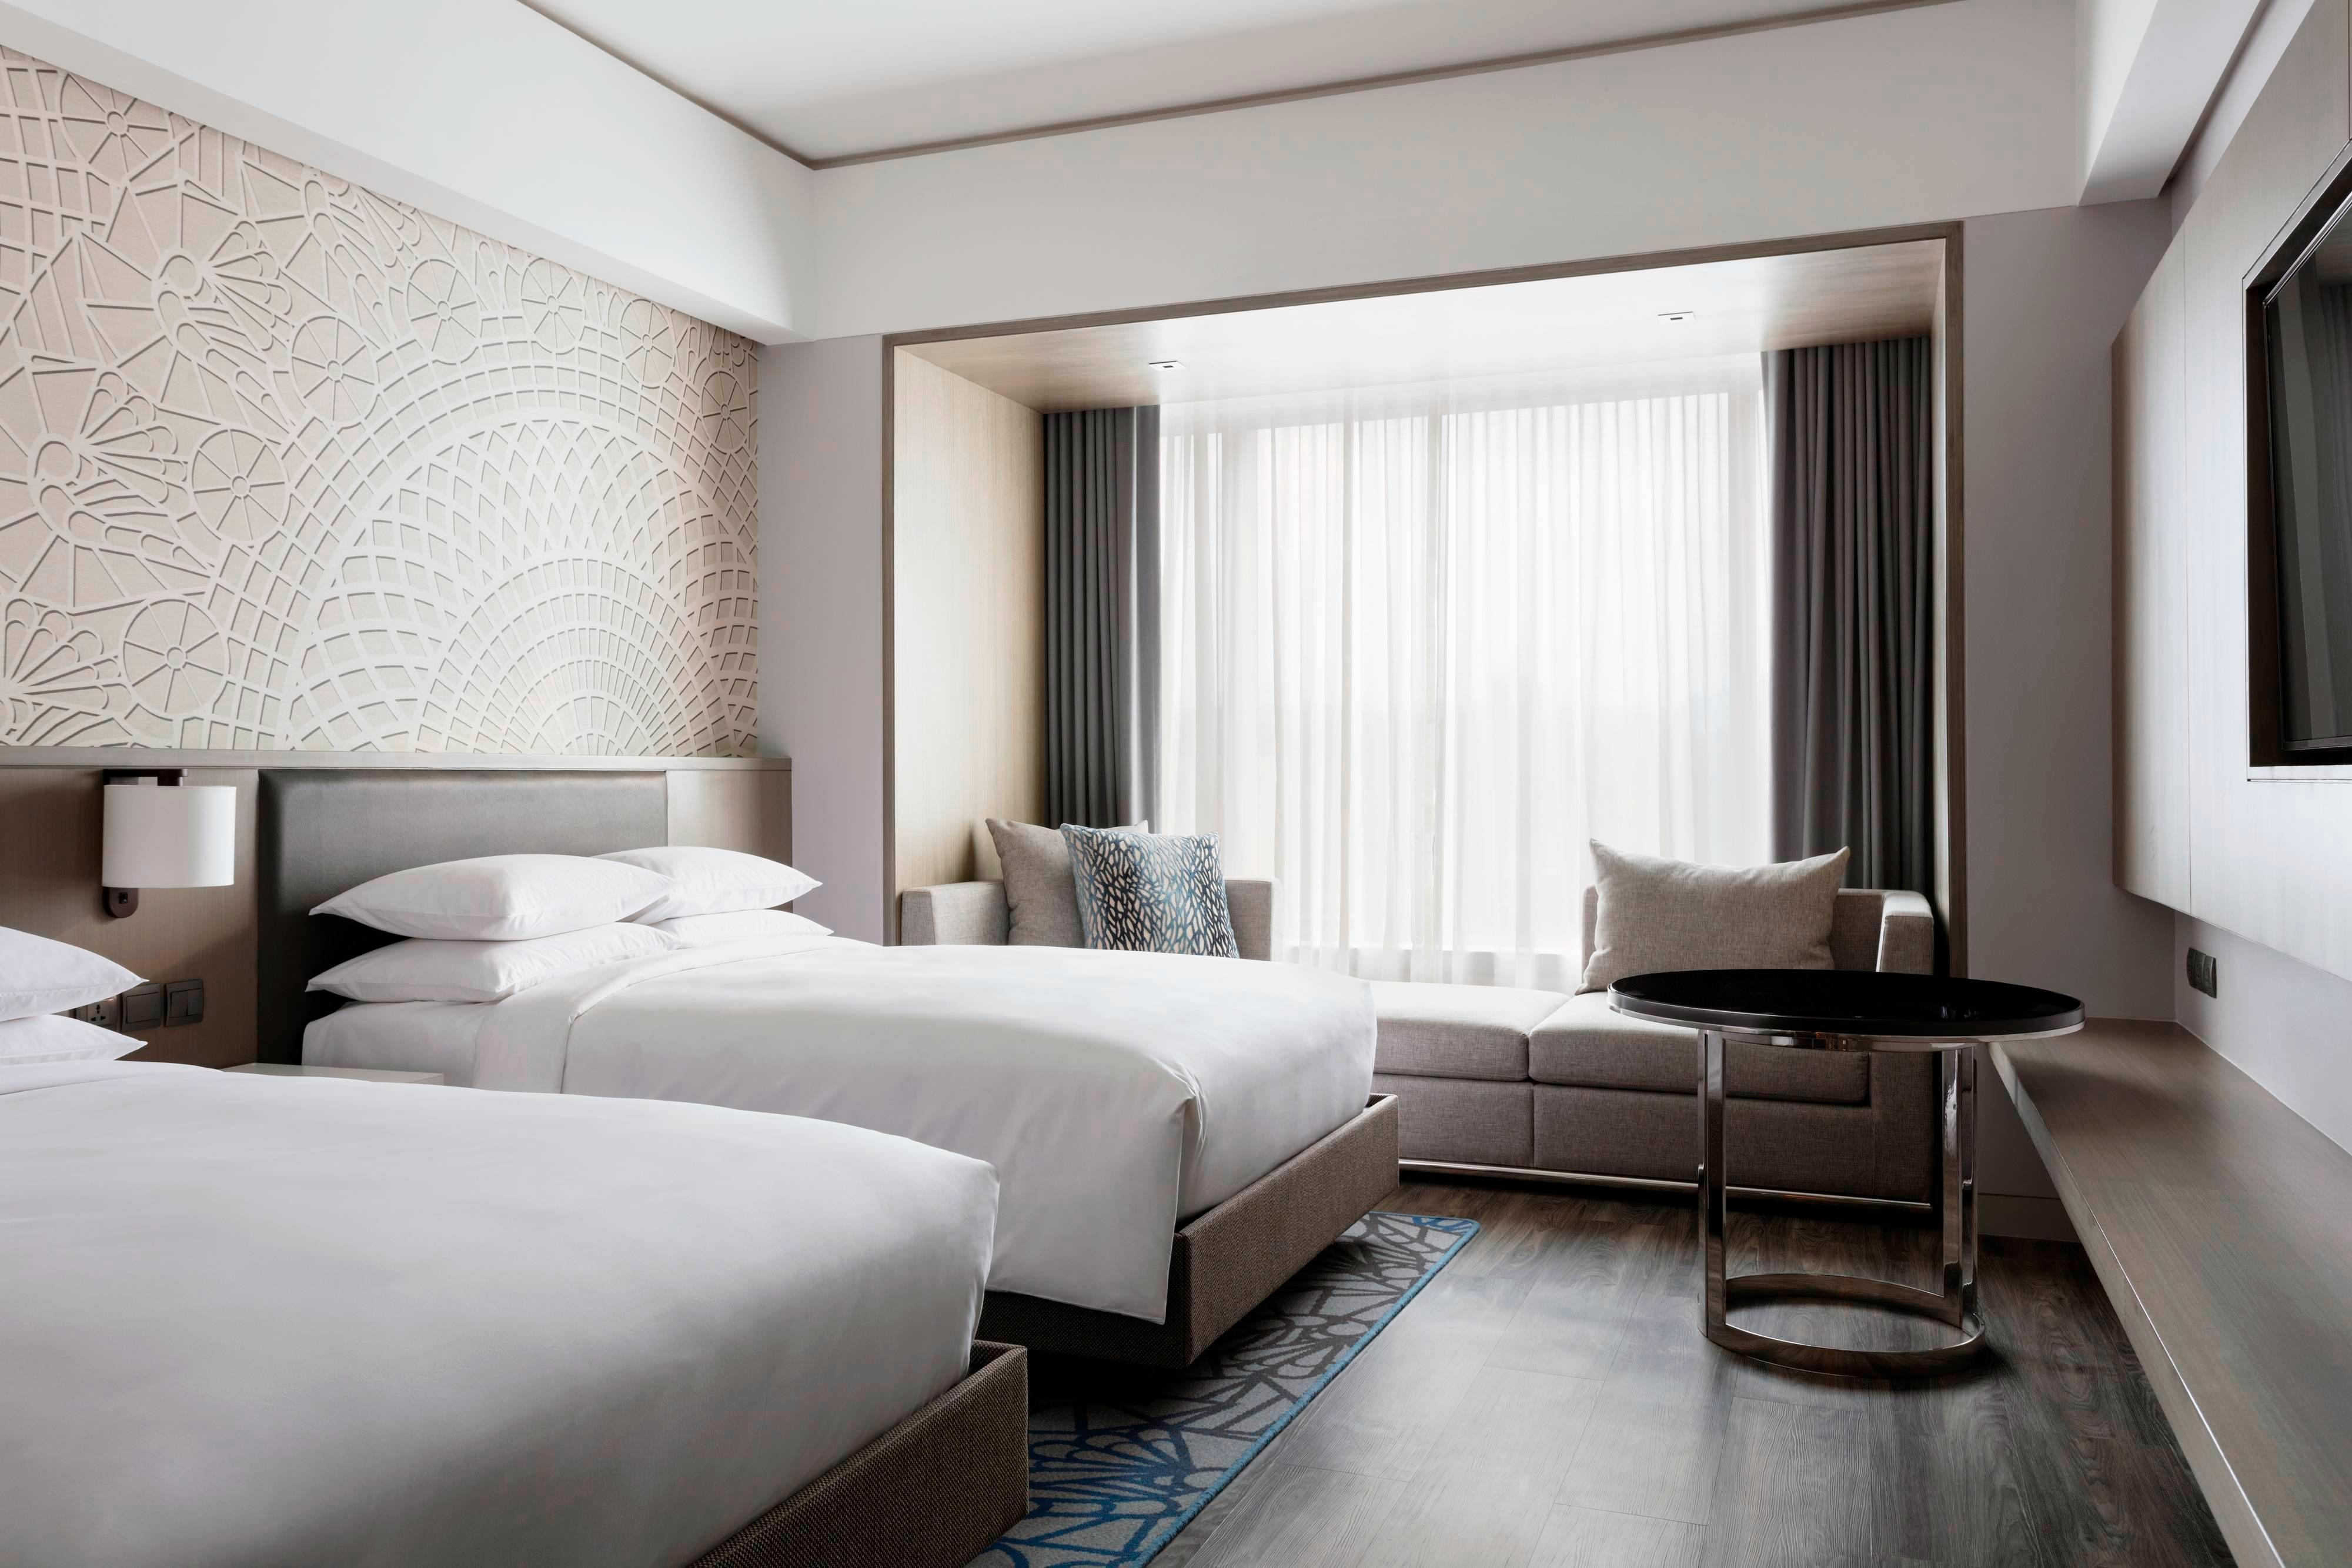 Reserve our twin/twin deluxe guest room for your trip in Clark Freeport Zone, which comes with two twin beds, a sofa, a flat-screen LED television and a table.